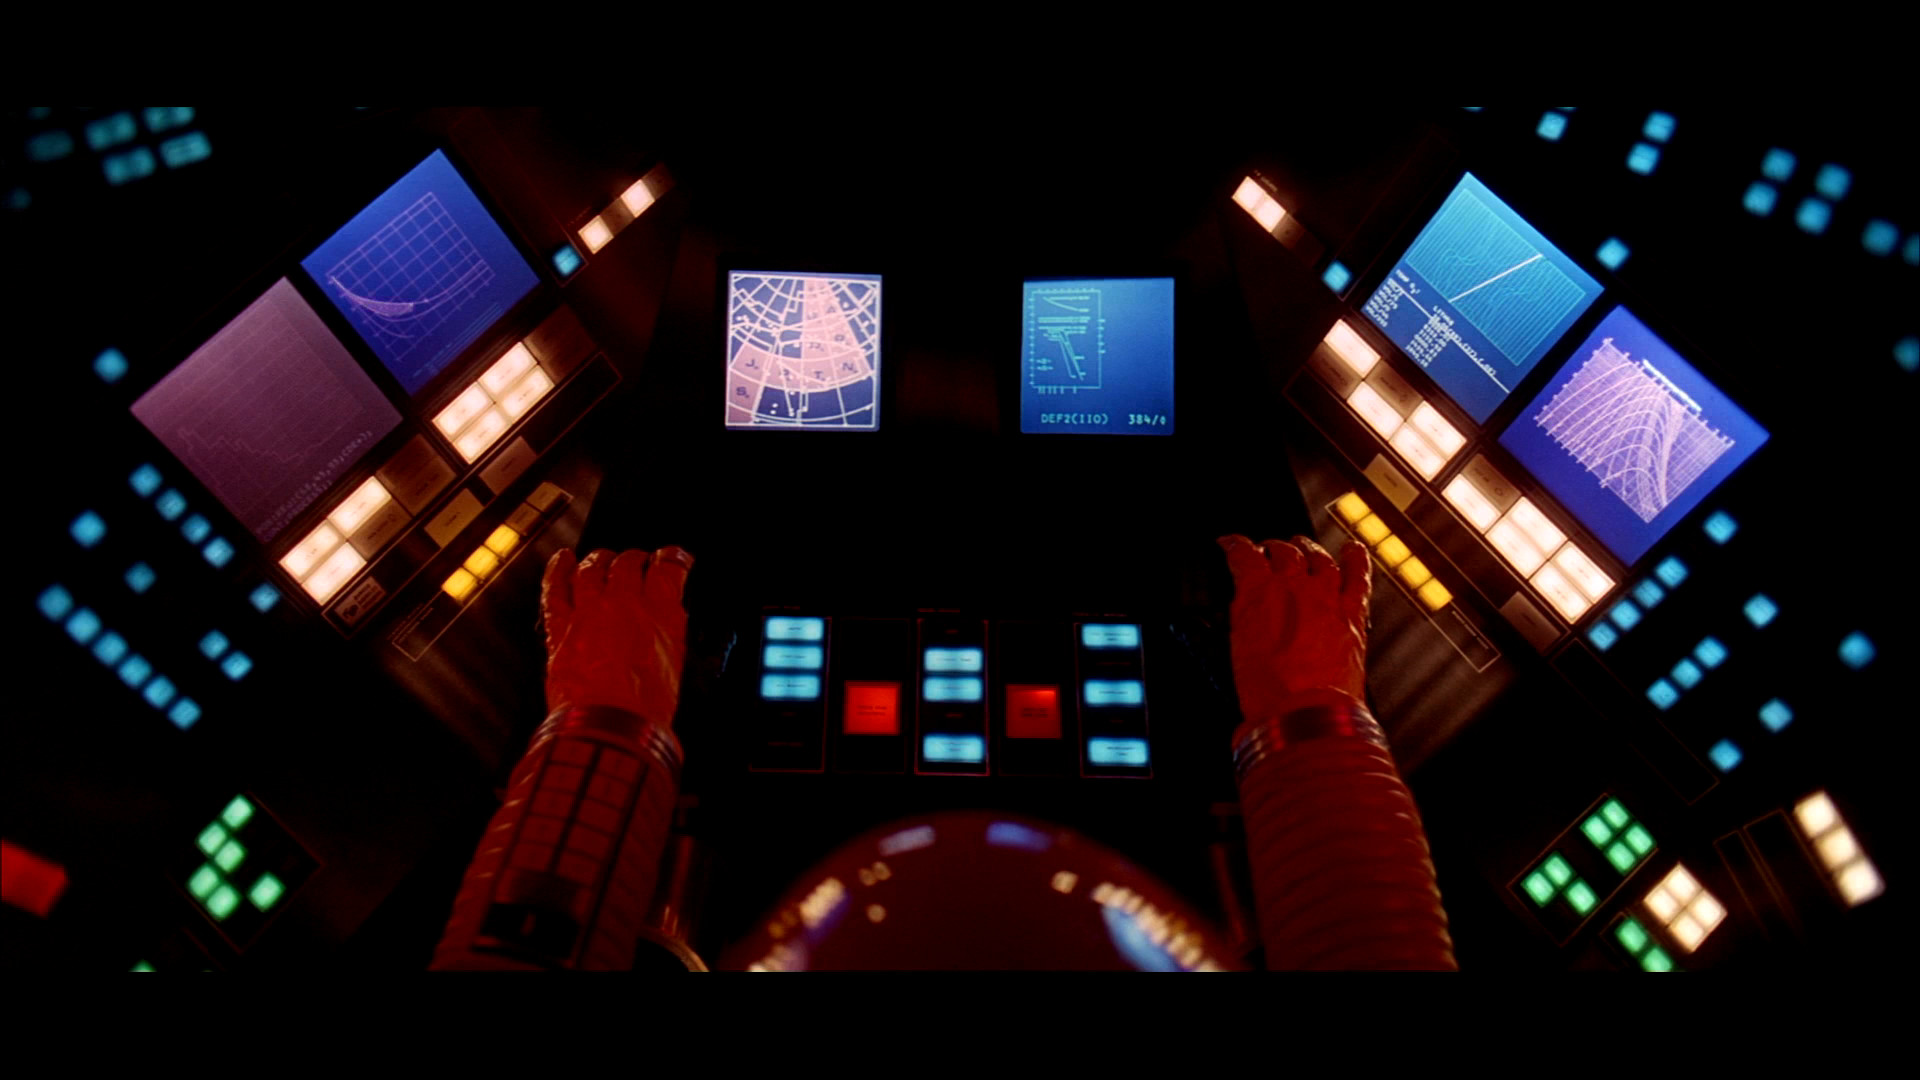 2001 a space odyssey download hd